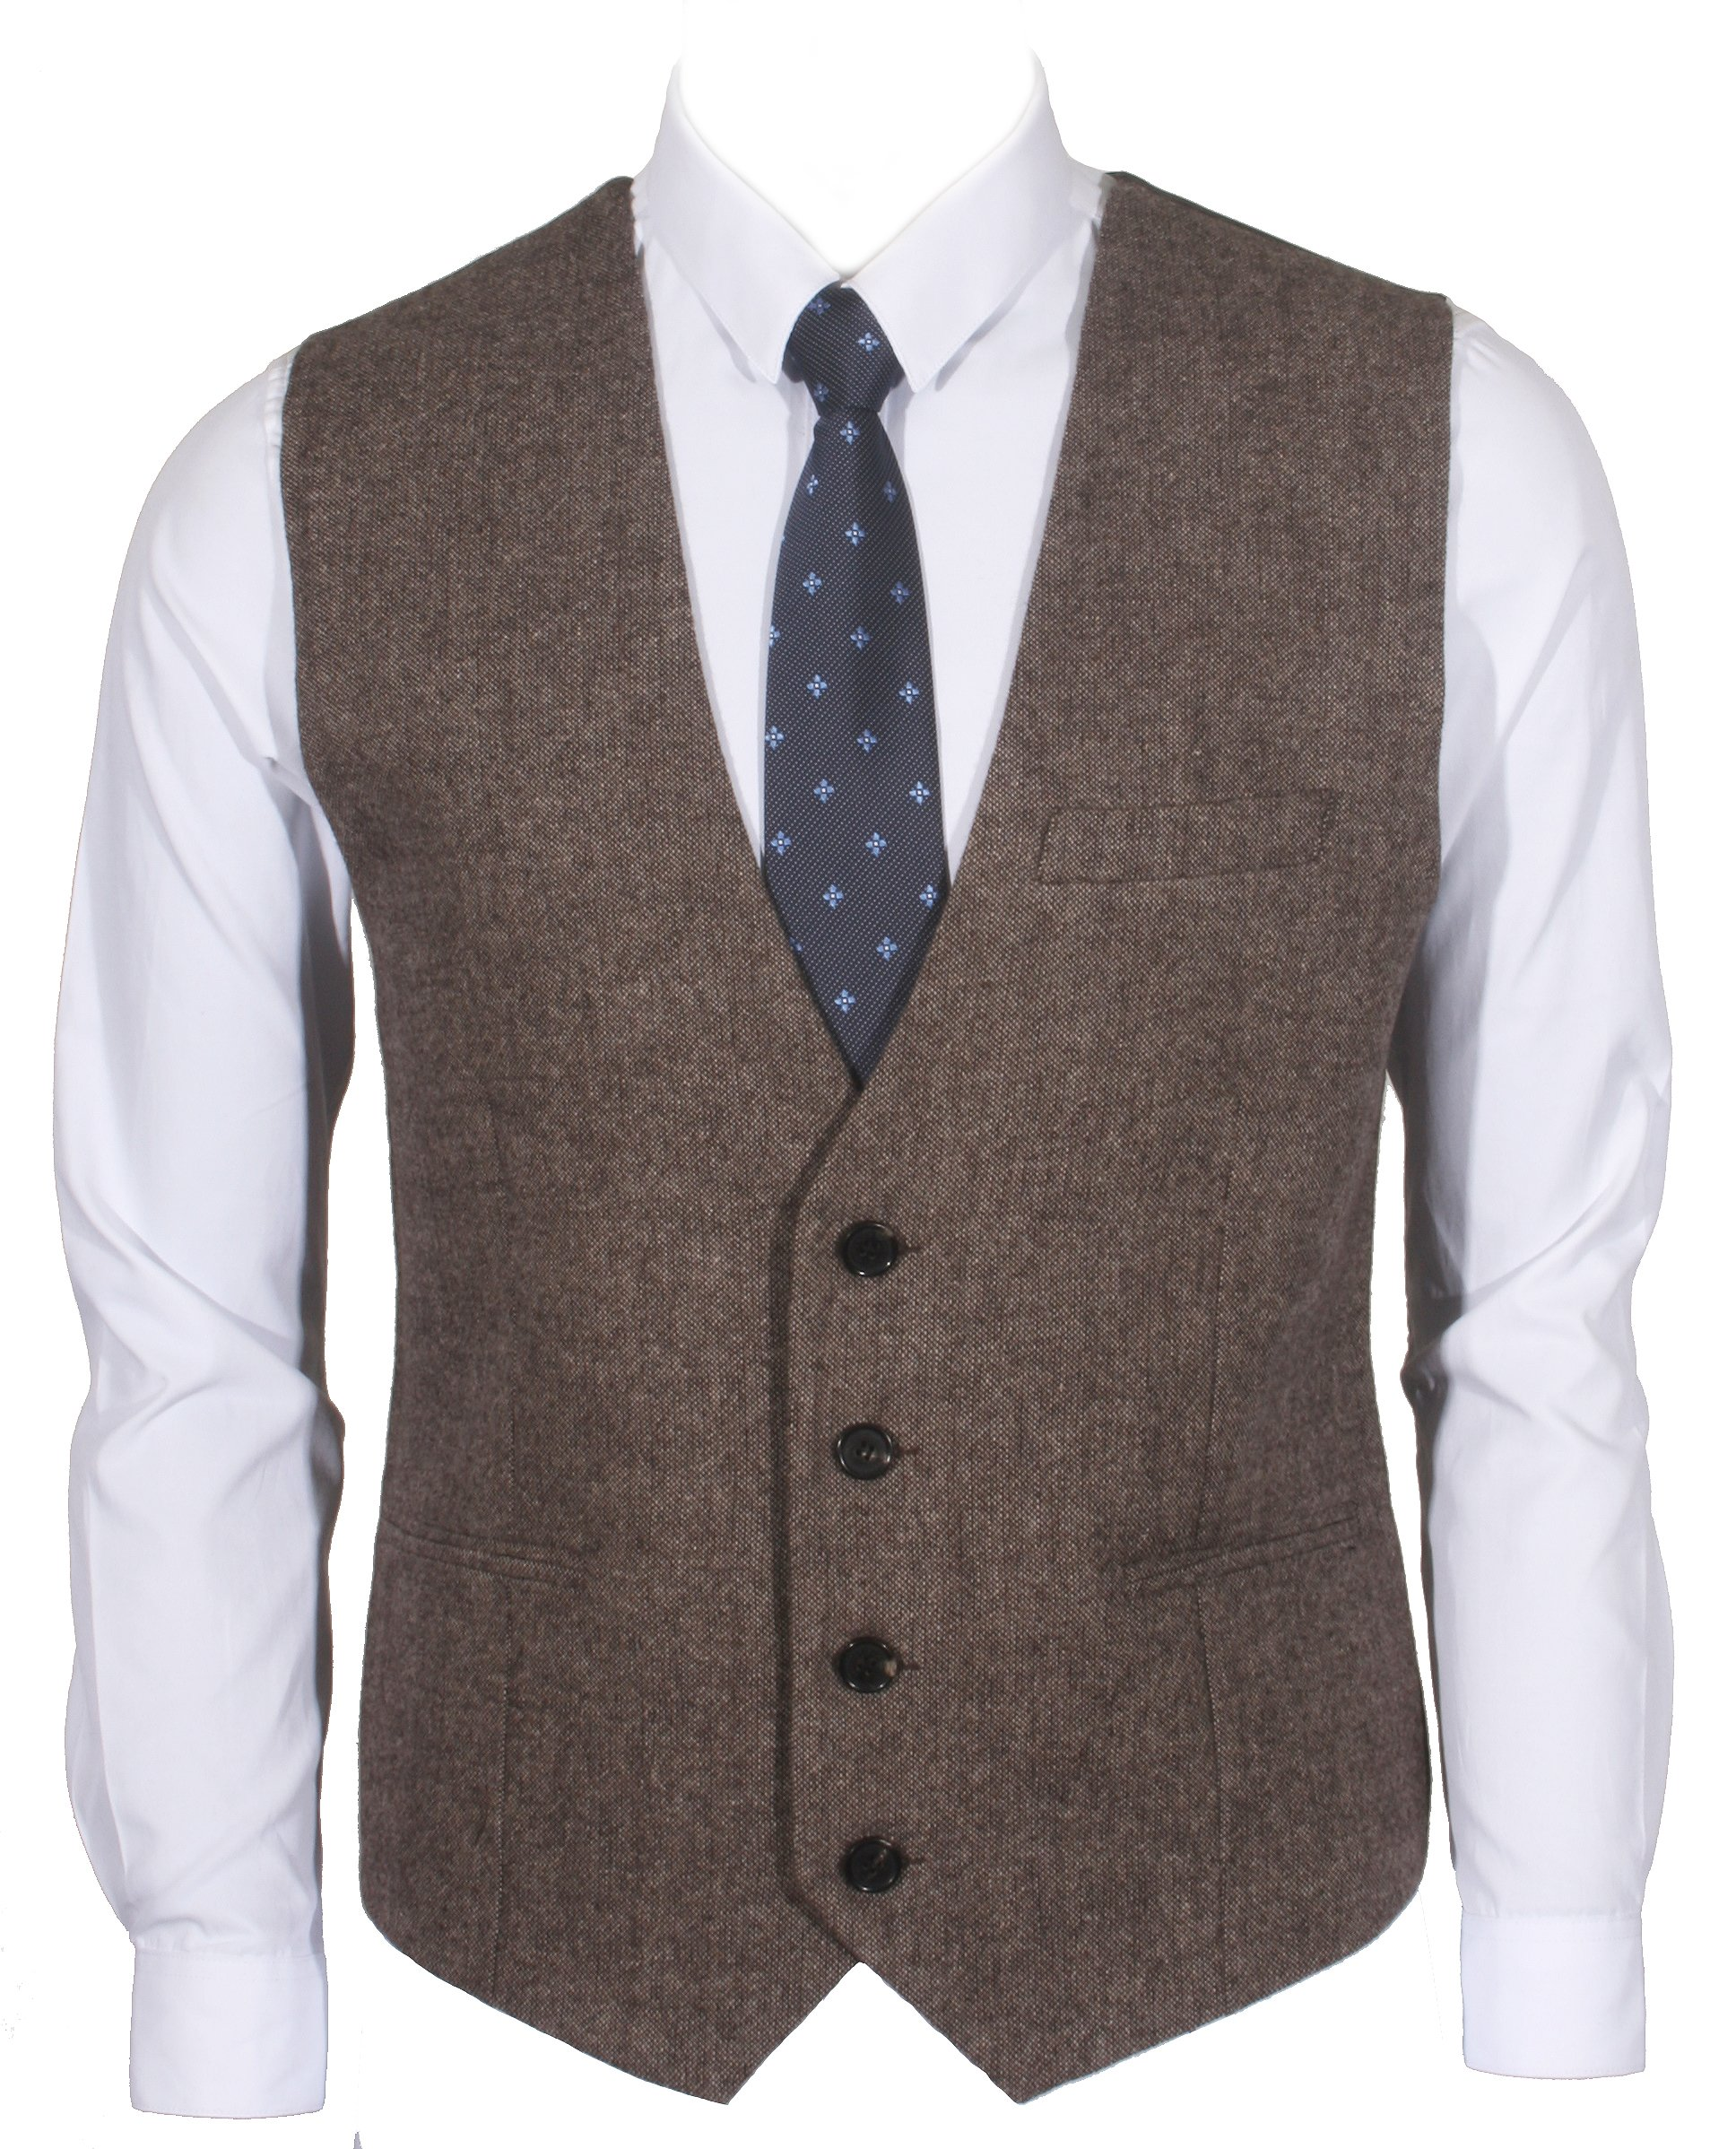 Ruth&Boaz3Pockets4ButtonsWoolHerringbone/TweedBusiness SuitVest (L, Tweed Brown) by Ruth&Boaz